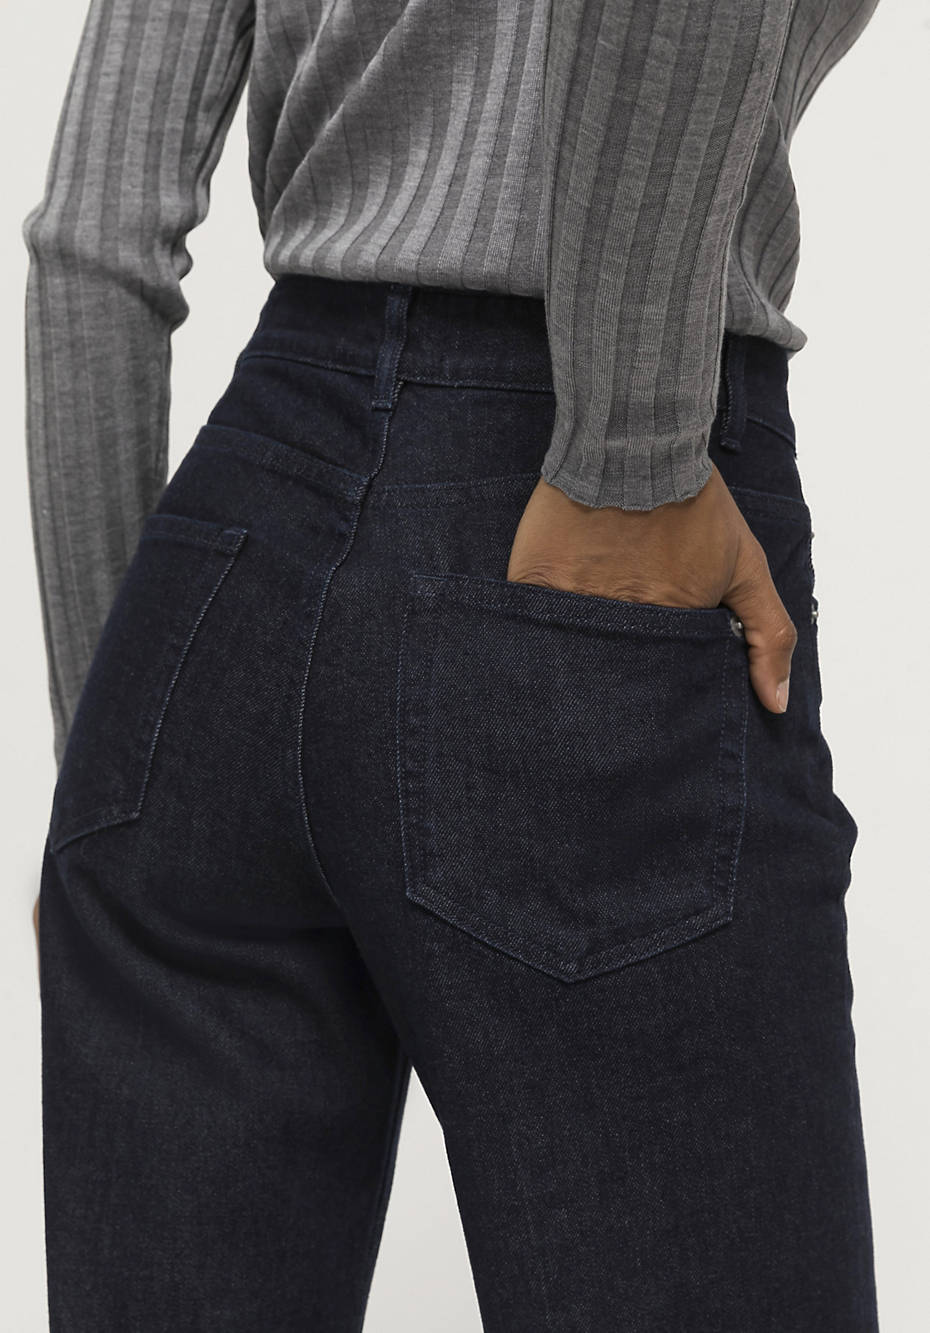 Relaxed fit jeans made of organic wool denim